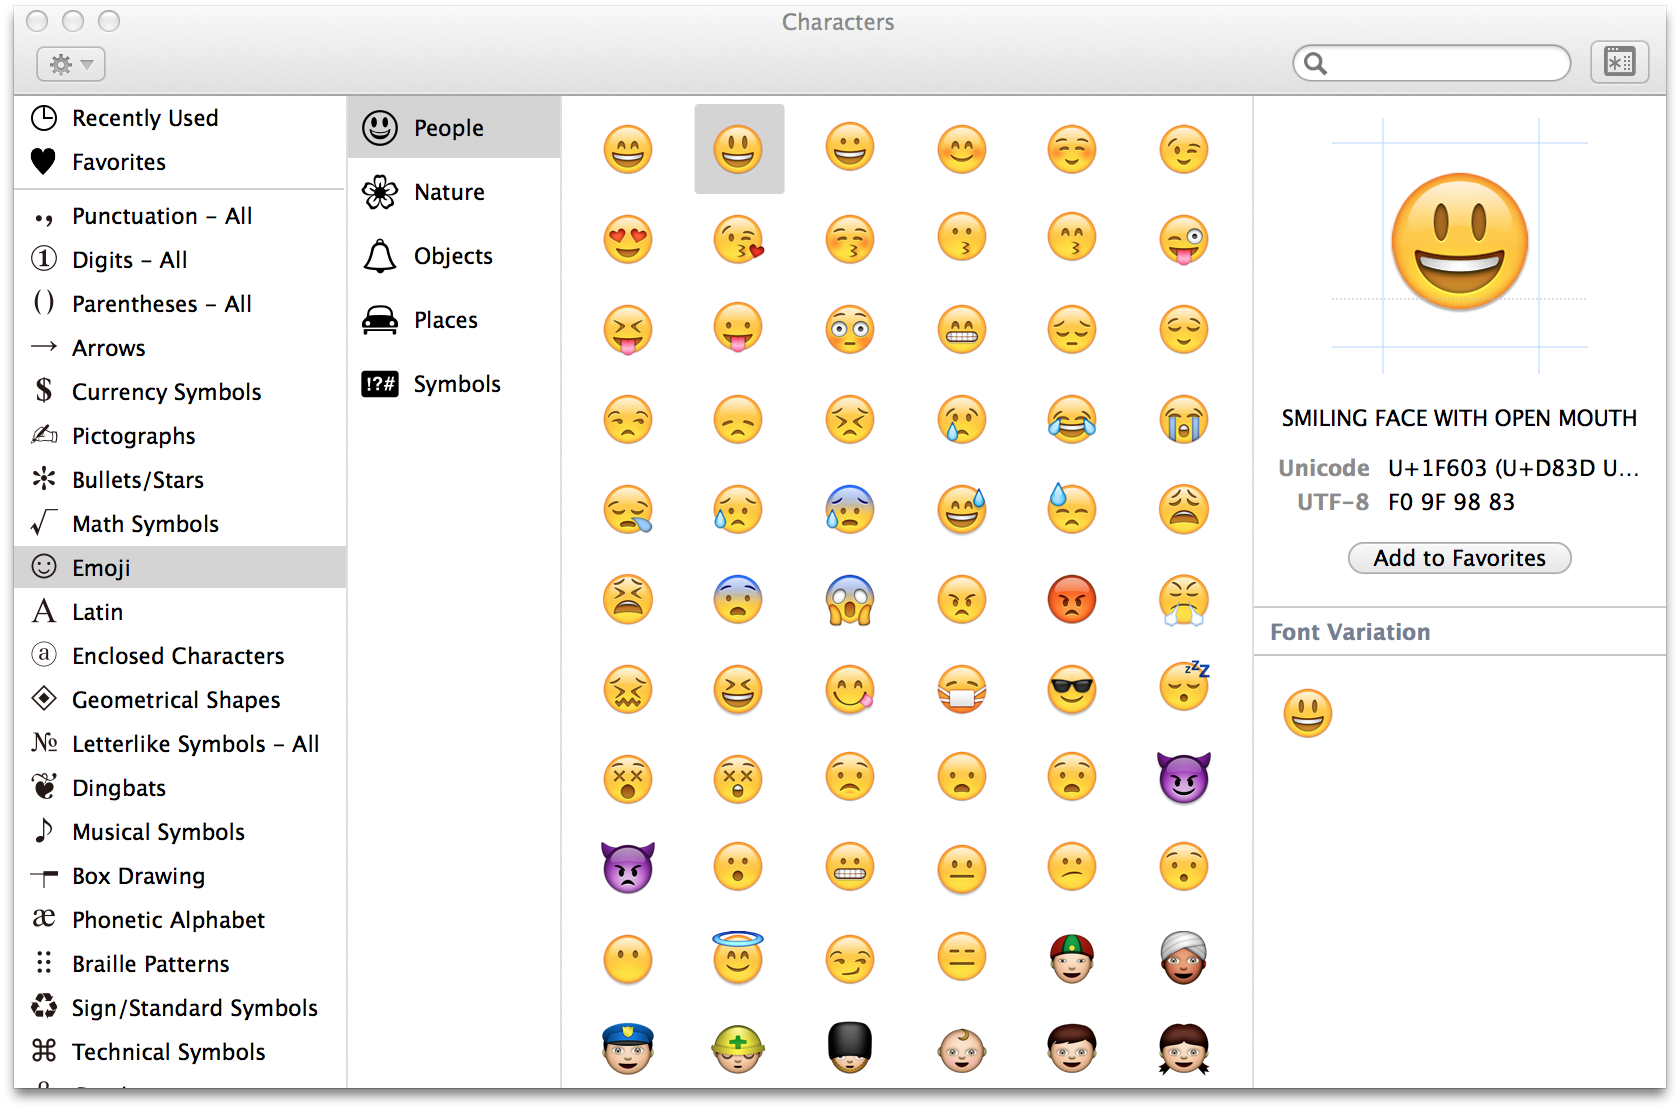 The Character Viewer In Os X Showing A Table Of Emoji And Unicode